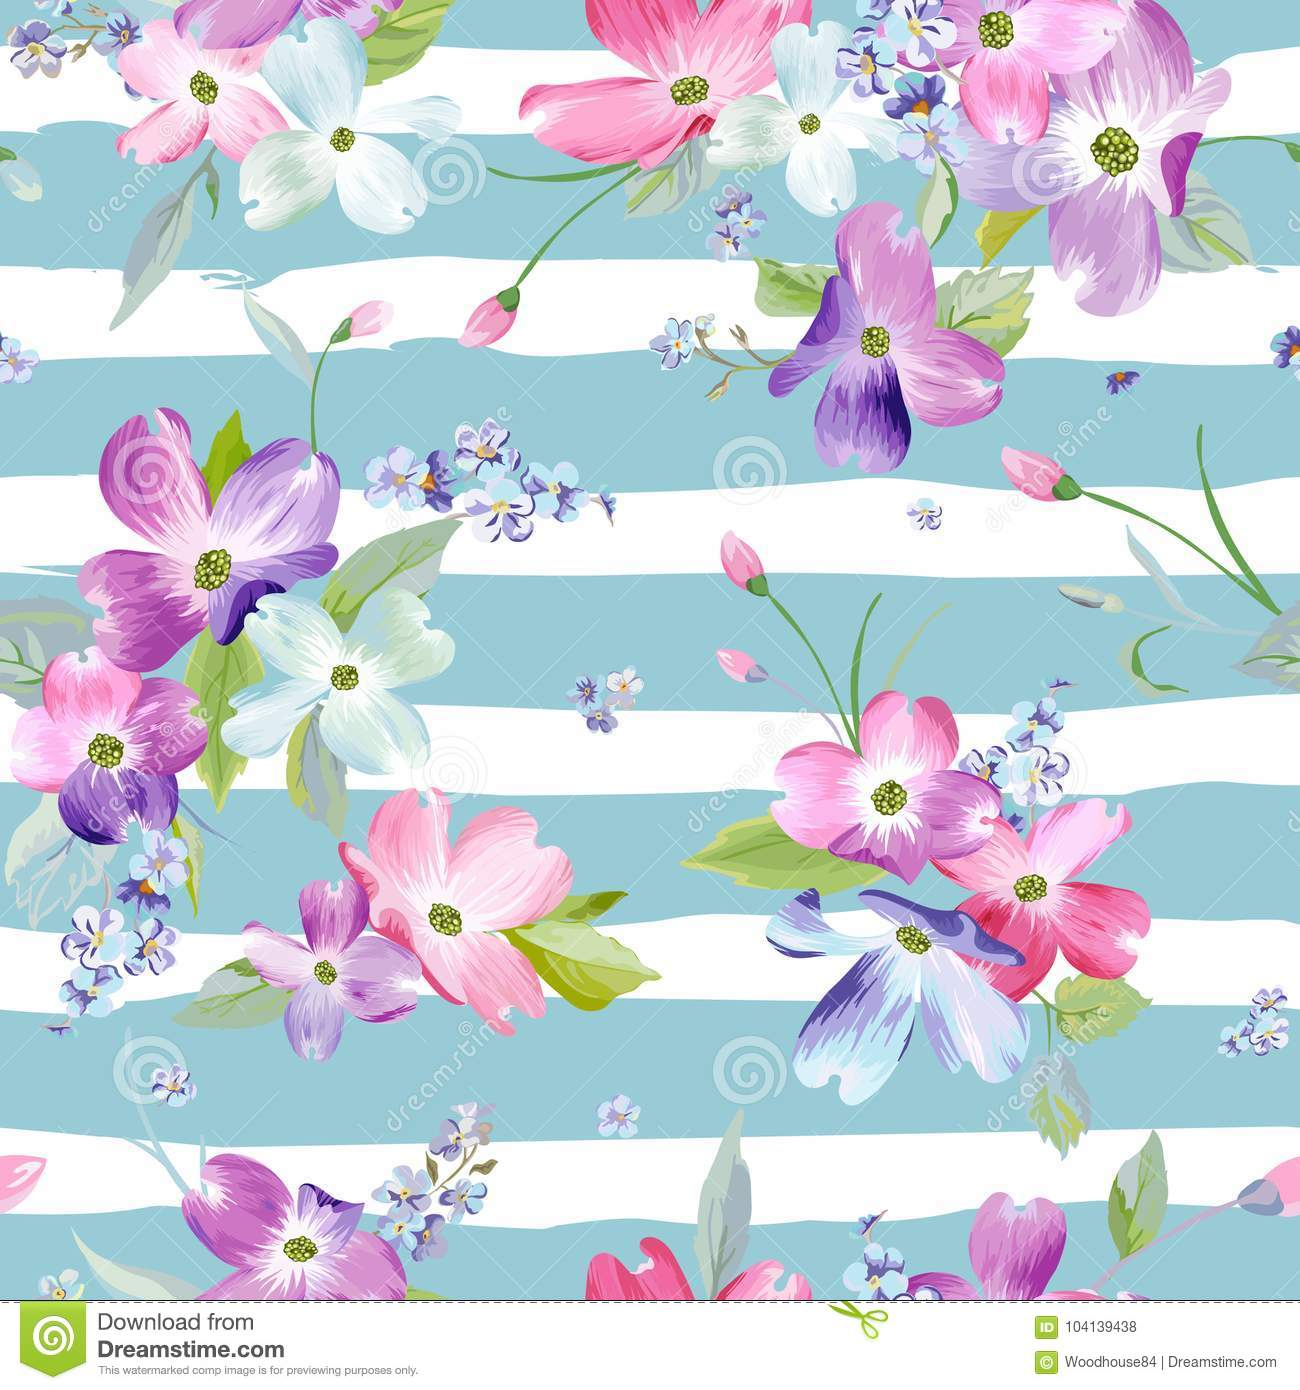 Spring Flowers Seamless Pattern. Watercolor Floral Background for Wedding Invitation, Fabric, Wallpaper, Print